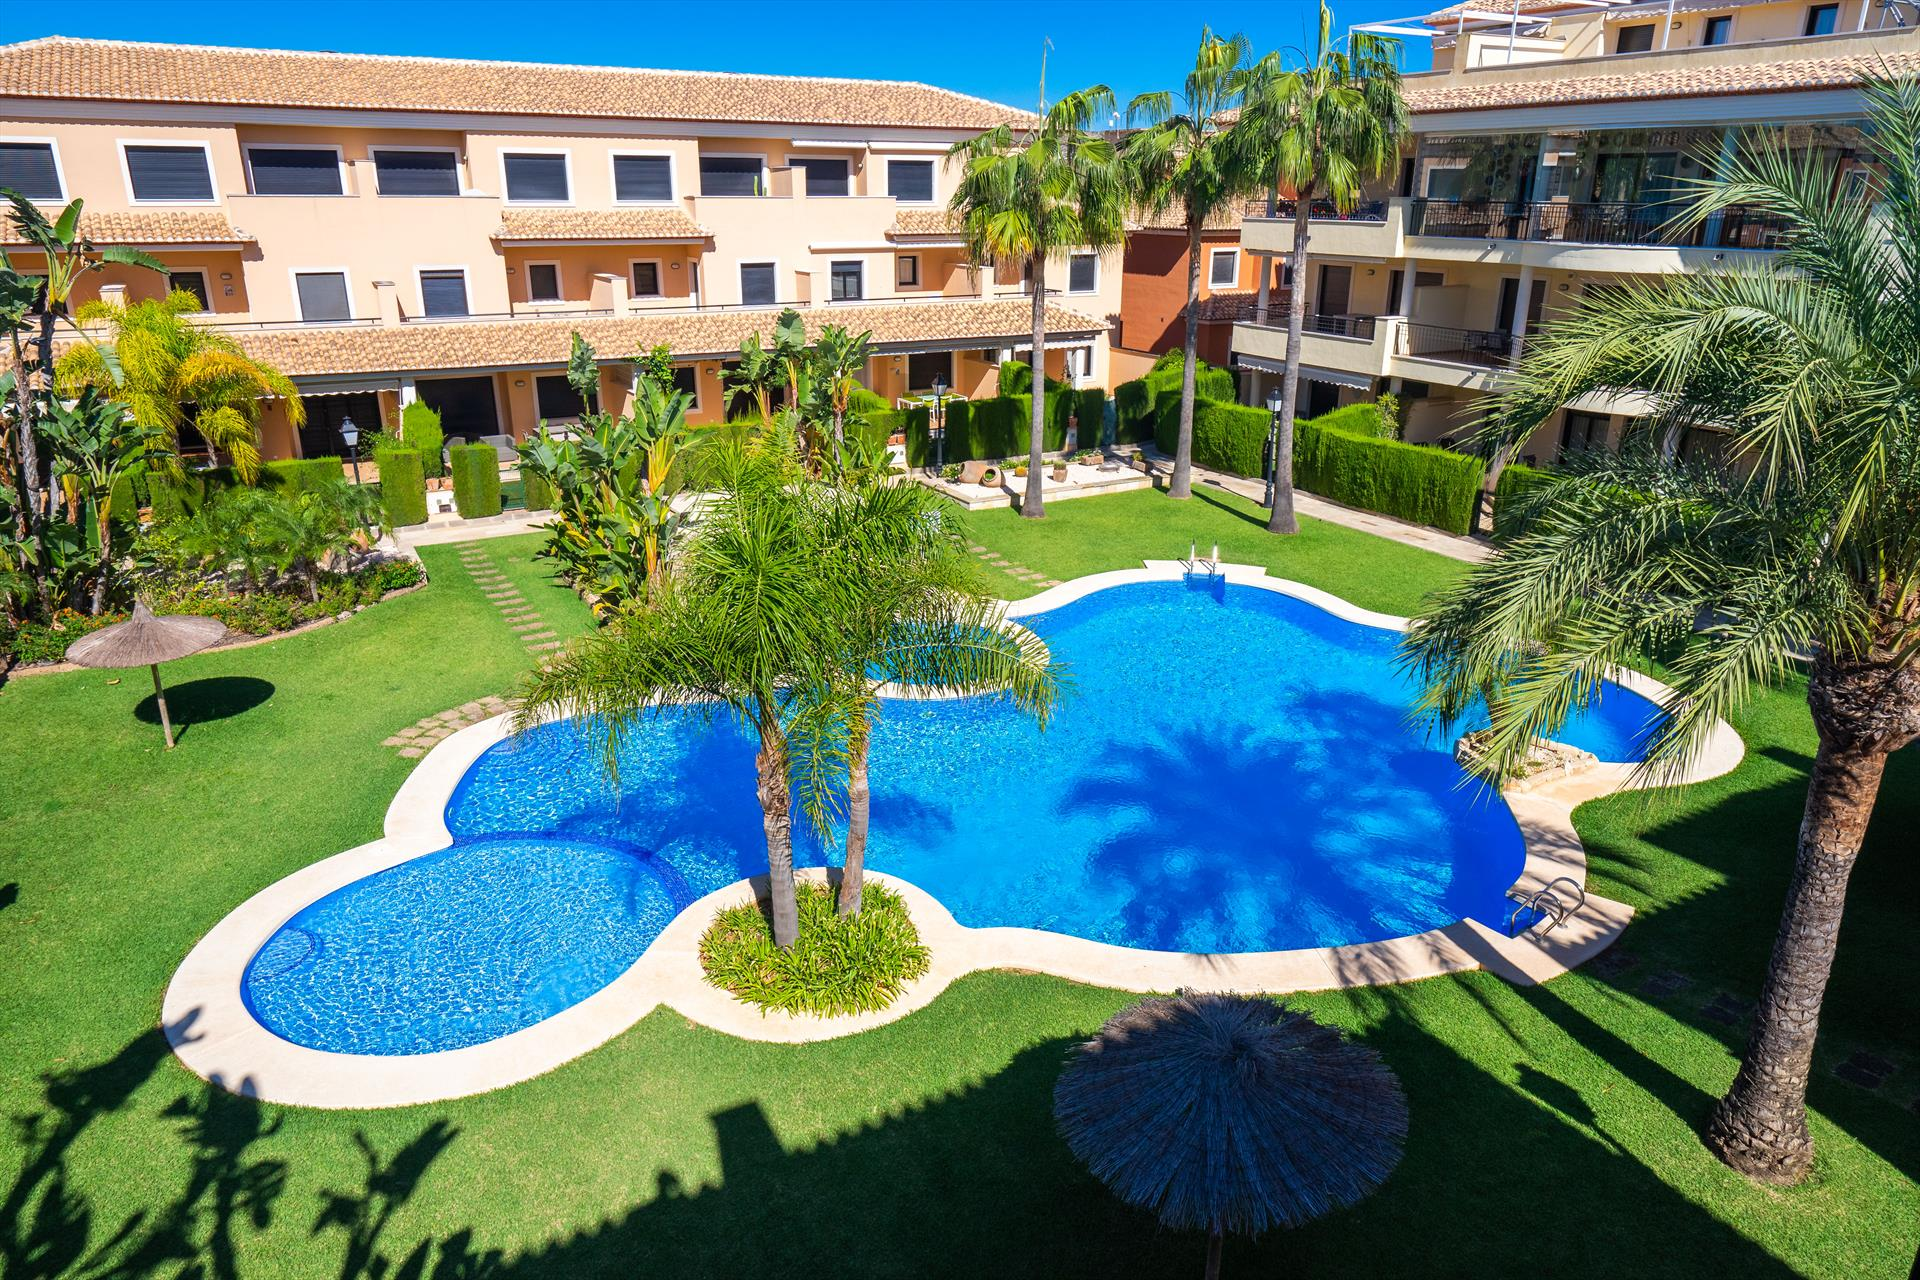 Jardines de Niza 6 pax, Wonderful and cheerful apartment  with communal pool in Javea, on the Costa Blanca, Spain for 6 persons.....